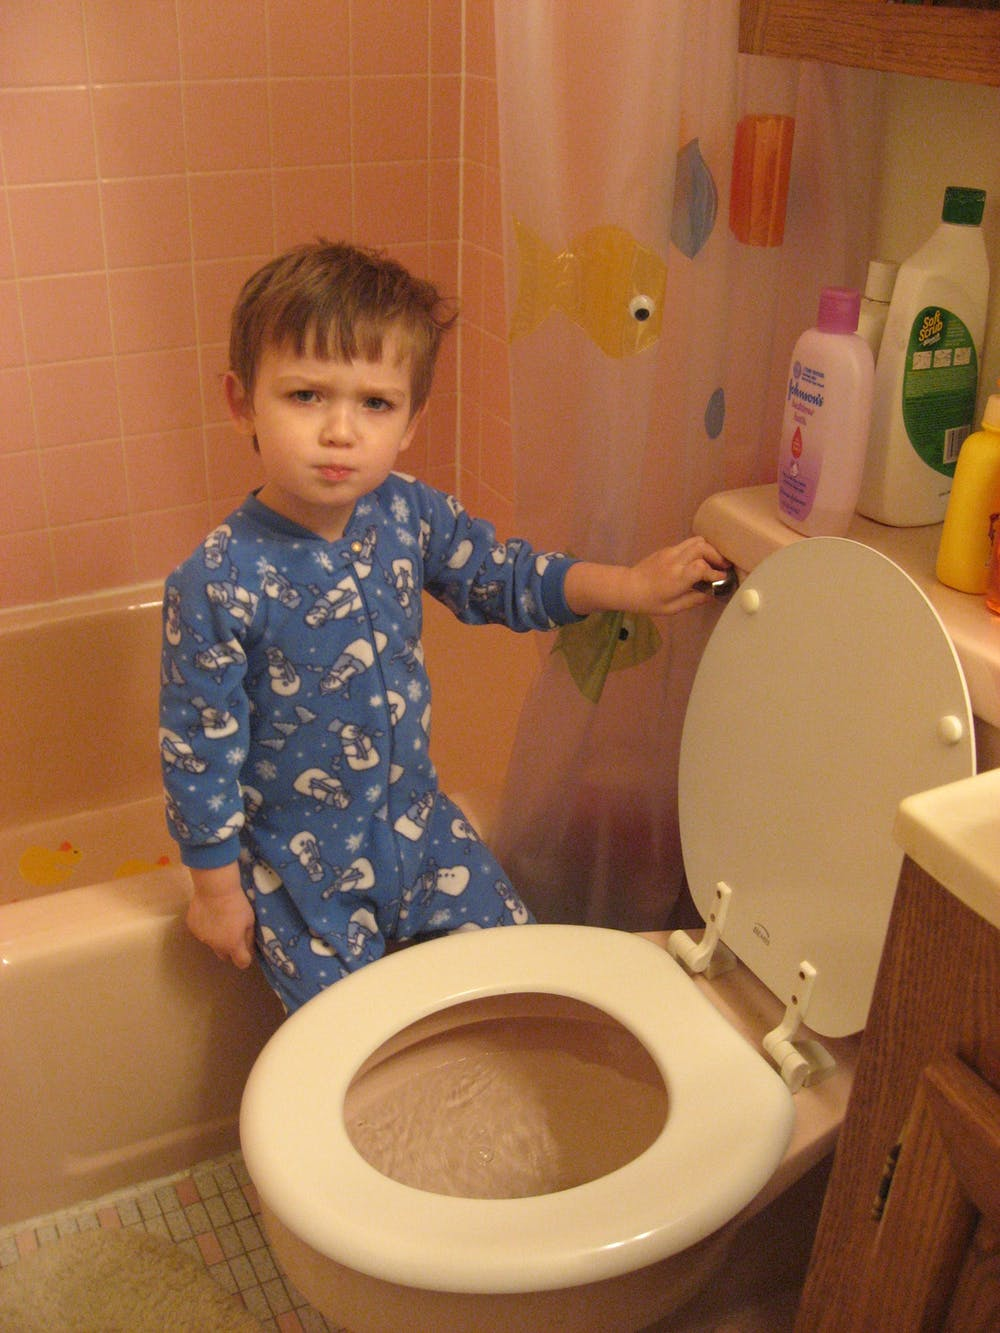 Flushing Is Fun But There Are Some Things You Should Never Flush Down The Toilet Like Baby Wipes Flickr Goonsquadsarah Cc By